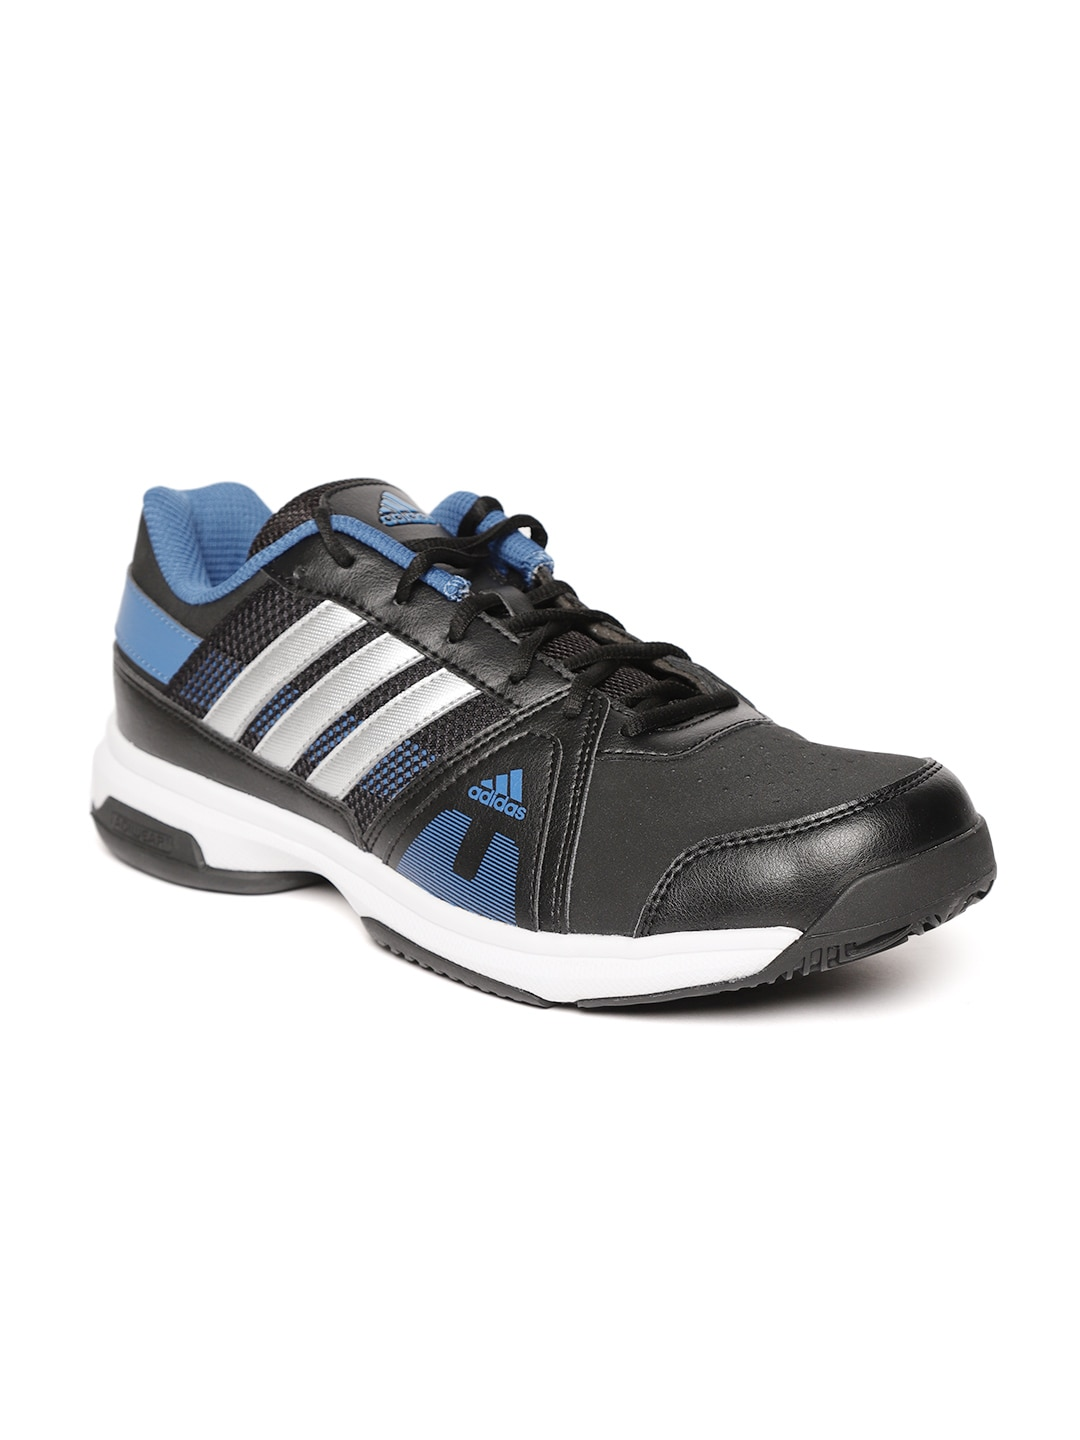 26788ef09d0 Adidas Tennis Shoes